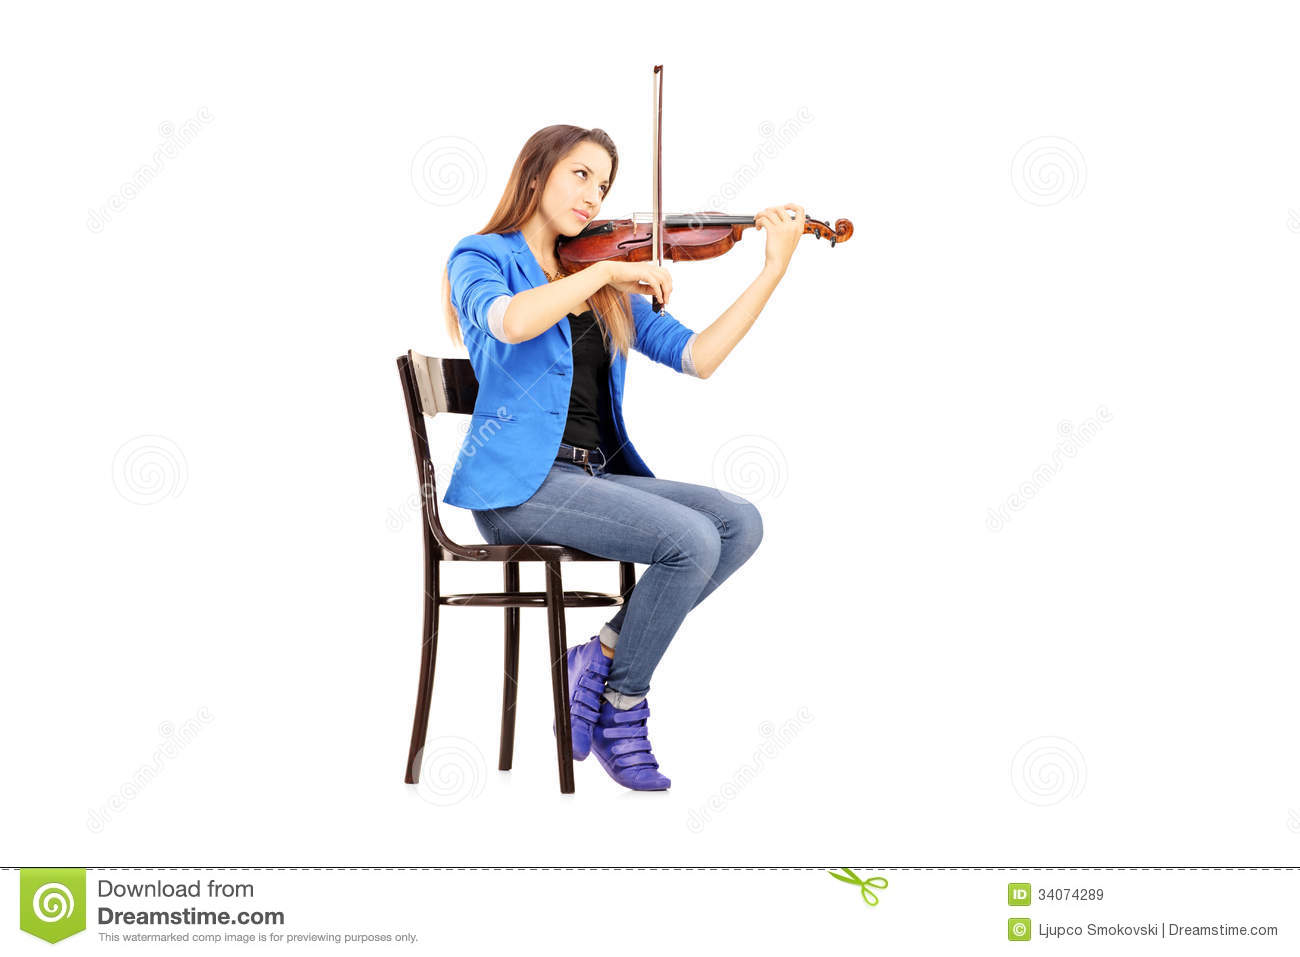 Casual Young Woman Seated On A Wooden Chair Playing The